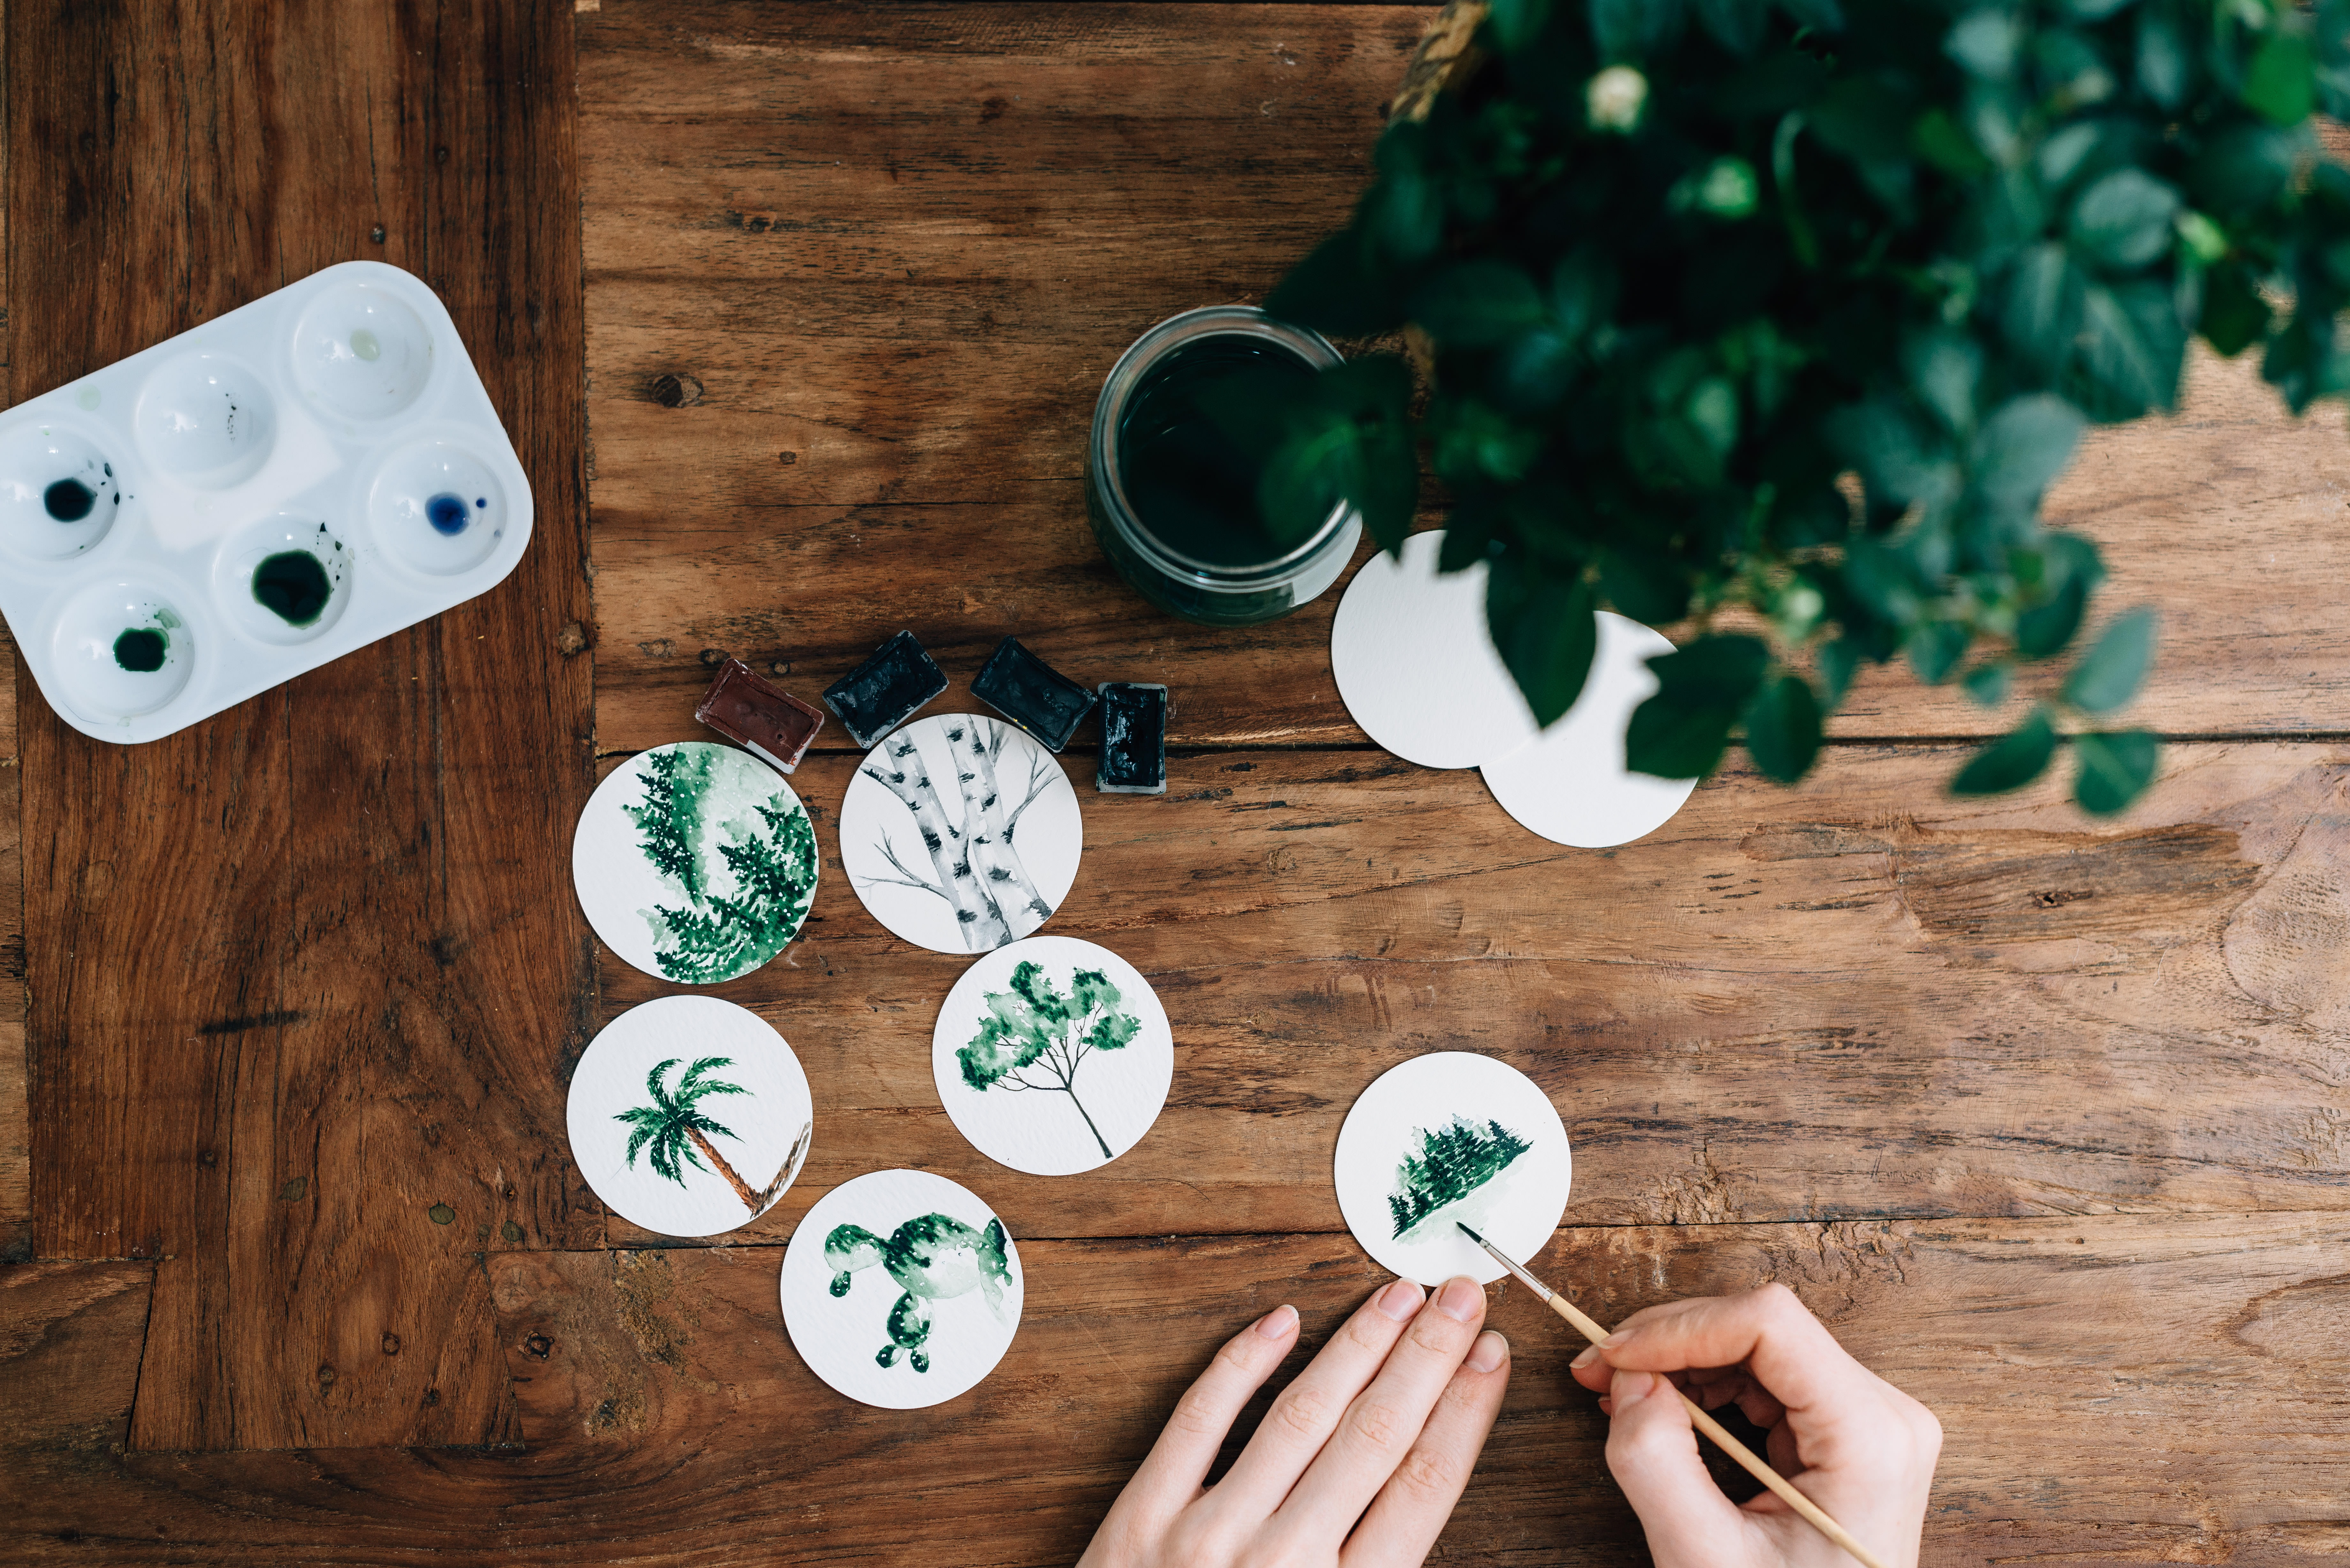 On a wooden table, a woman paints leafy plants on white disks with green paint.